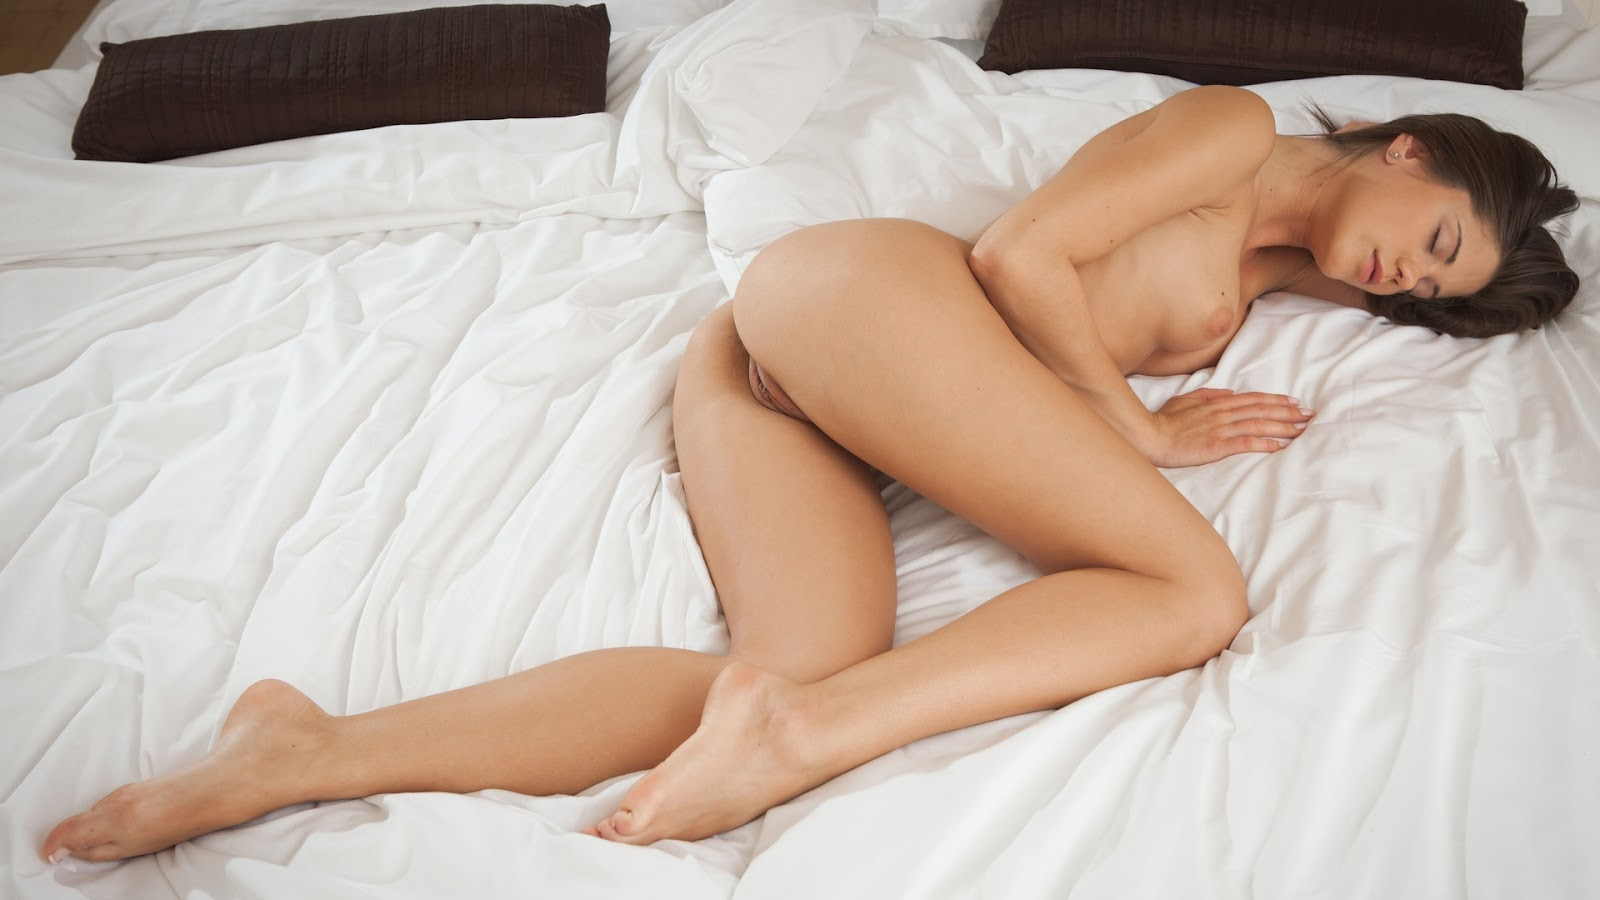 Women nude in bed sleeping